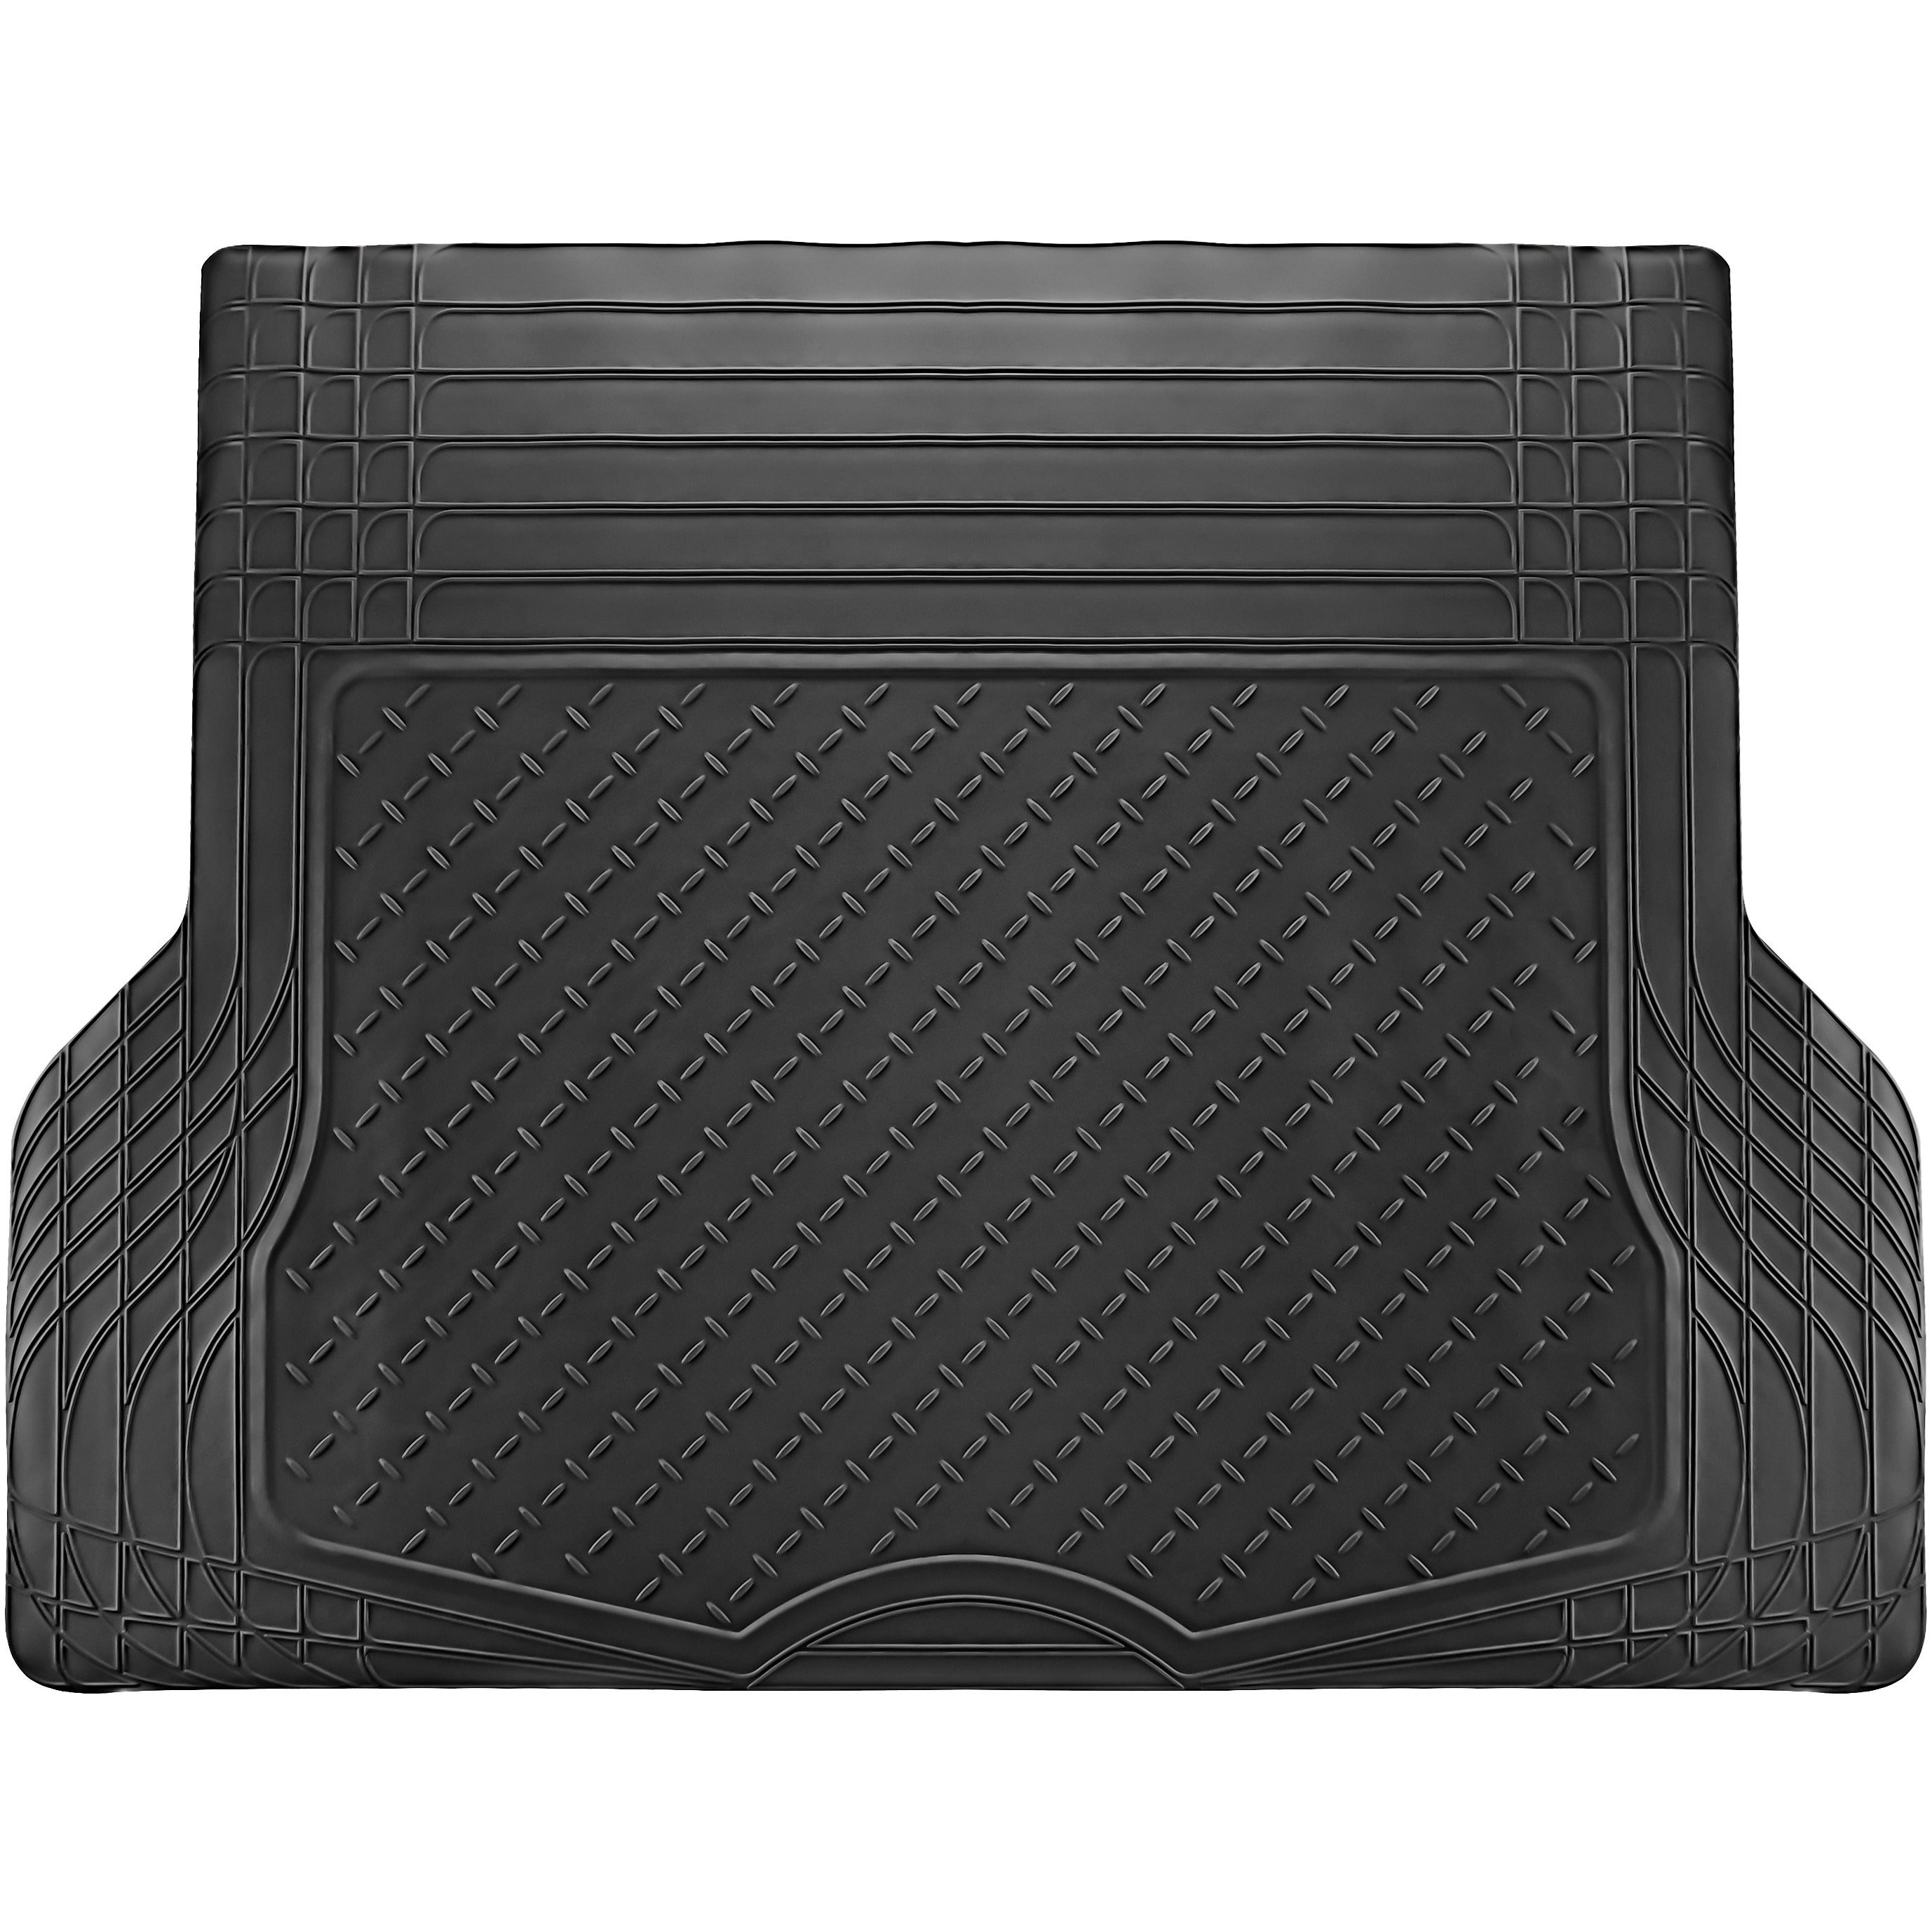 row weather infiniti fiber rubber maxpider mats carbon with in look car black com ip floor third mat liner walmart all